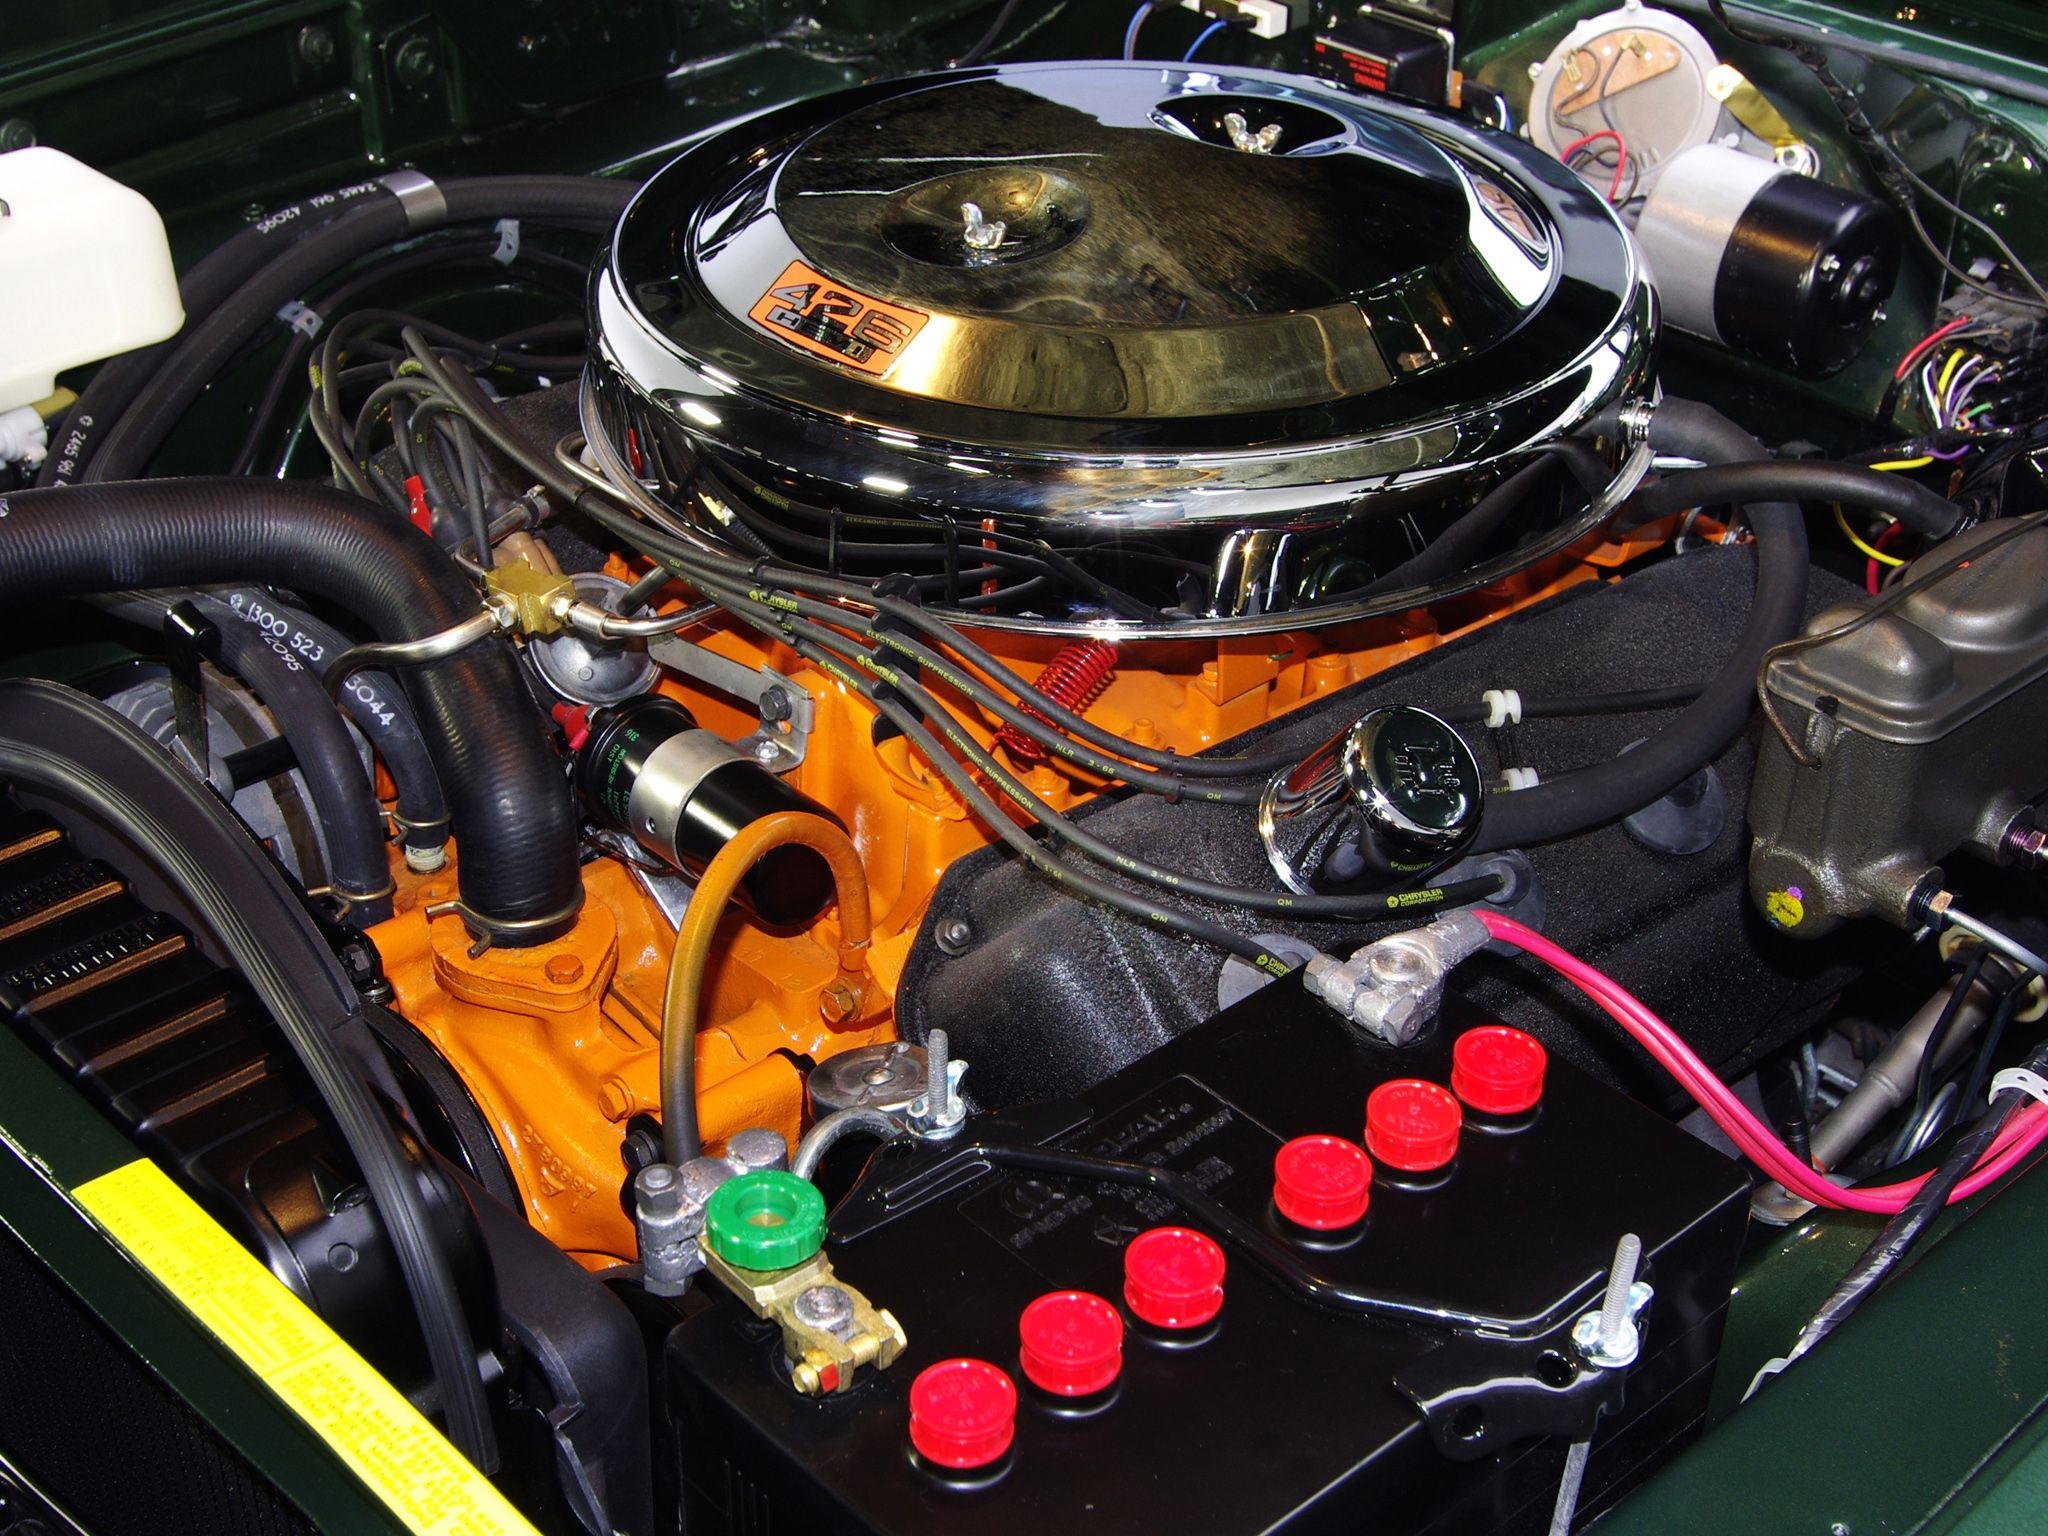 1967 dodge charger r t 426 hemi muscle classic engine engines